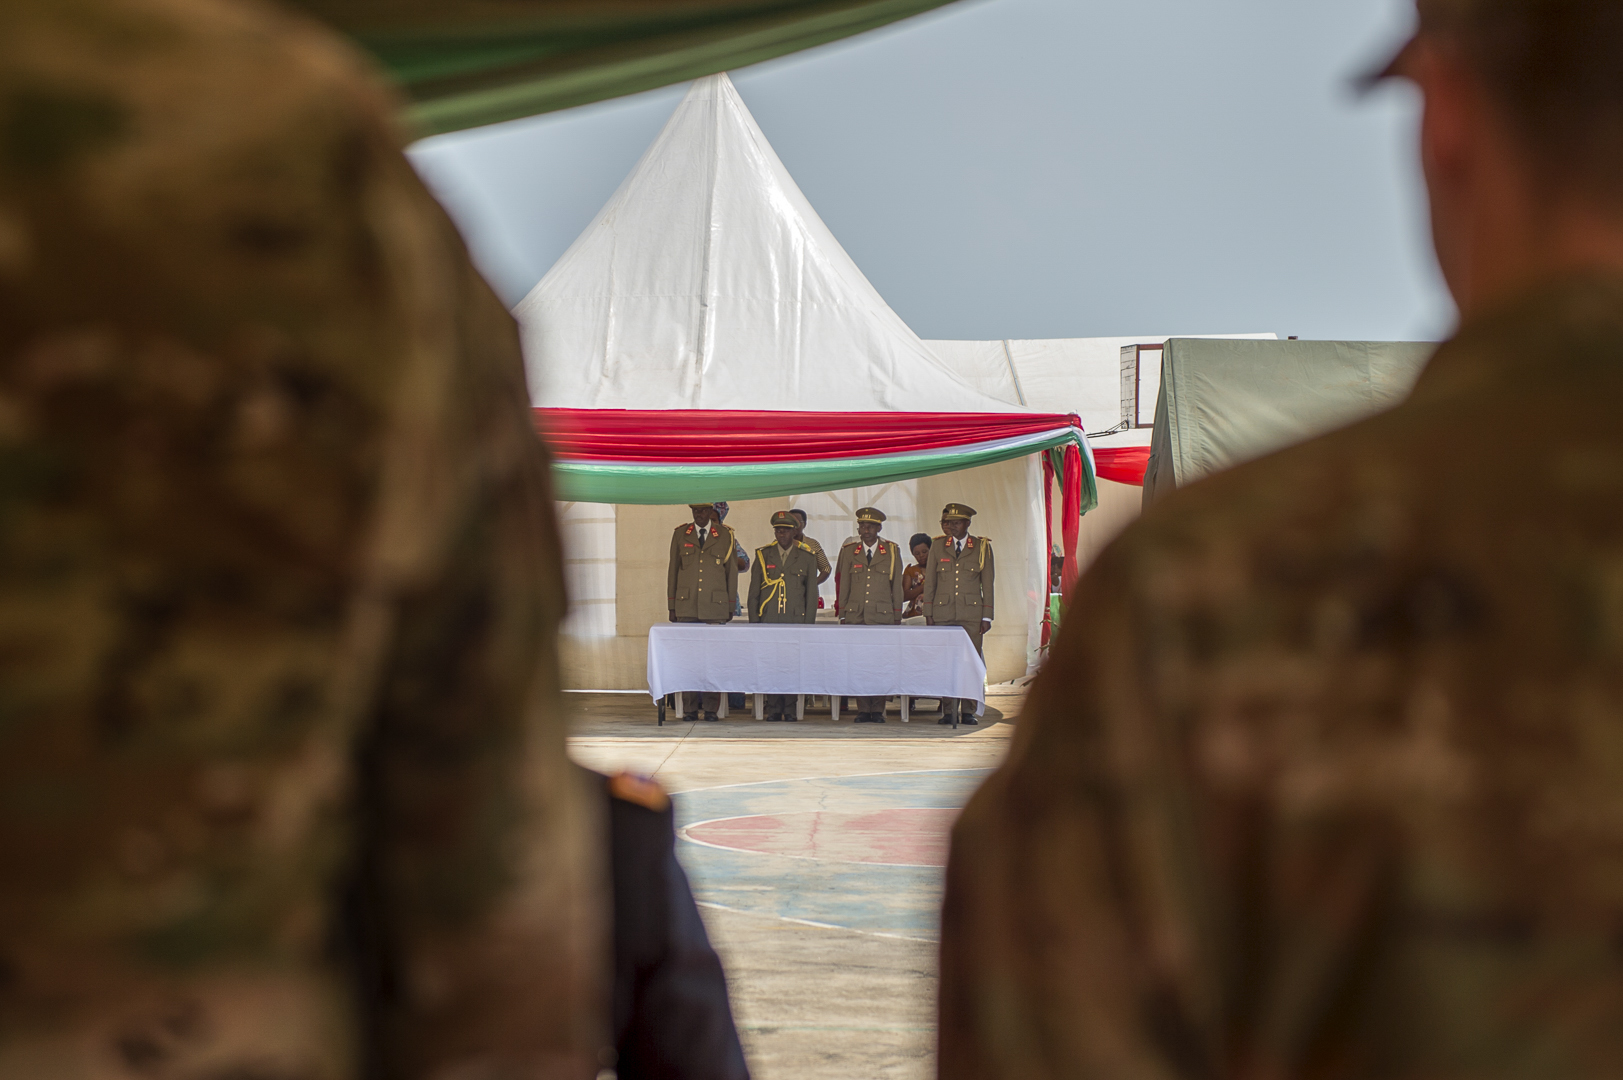 Members of the graduating class at the Burundi National Defence Force Senior Command and Staff College (SCSC) stand at attention while waiting their turn to graduate in Bujumbura, Burundi, July 19, 2019. The Burundi SCSC is a 45-week course that focuses on developing professional knowledge, skills in leadership, art and science of war to senior officers to enhance their capabilities in both command and staff duties at formation level and above. (U.S. Air Force Photo by Senior Airman Codie Trimble)